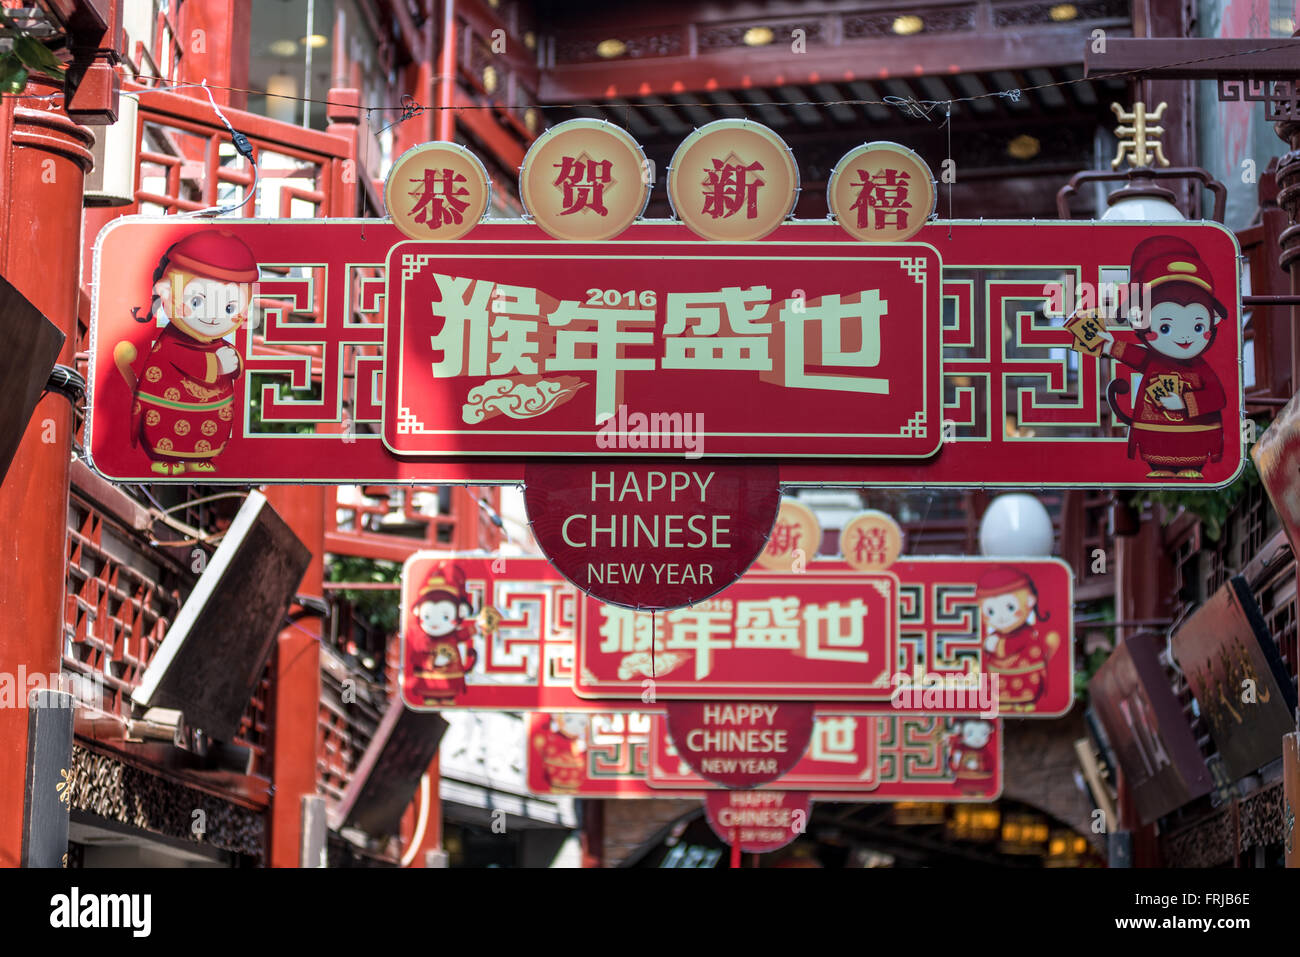 Happy Chinese New Year 2016 sign in old part of Shanghai, China - Stock Image